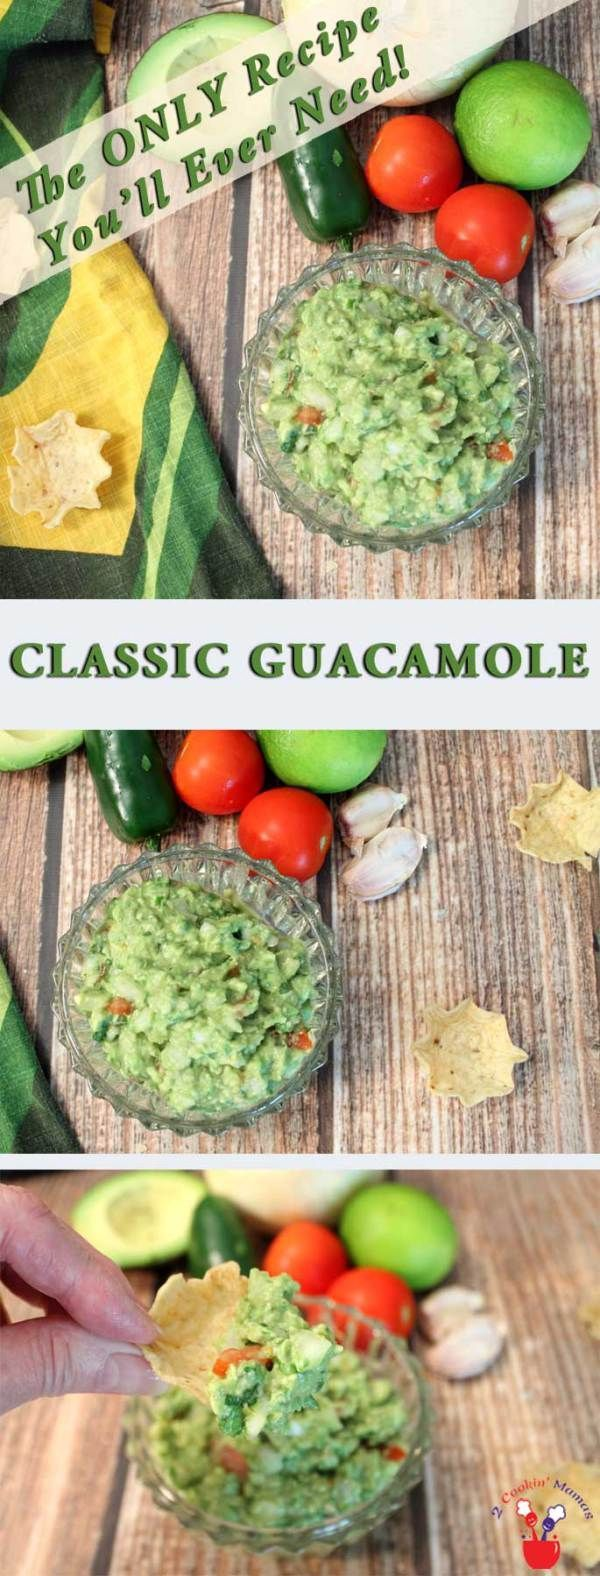 Classic-Guacamole-main | 2 Cookin Mamas The only recipe you'll ever need for a deliciously fresh, flavorful & delicious guacamole. So easy & perfect for any occasion. #dip #appetizer #avocados